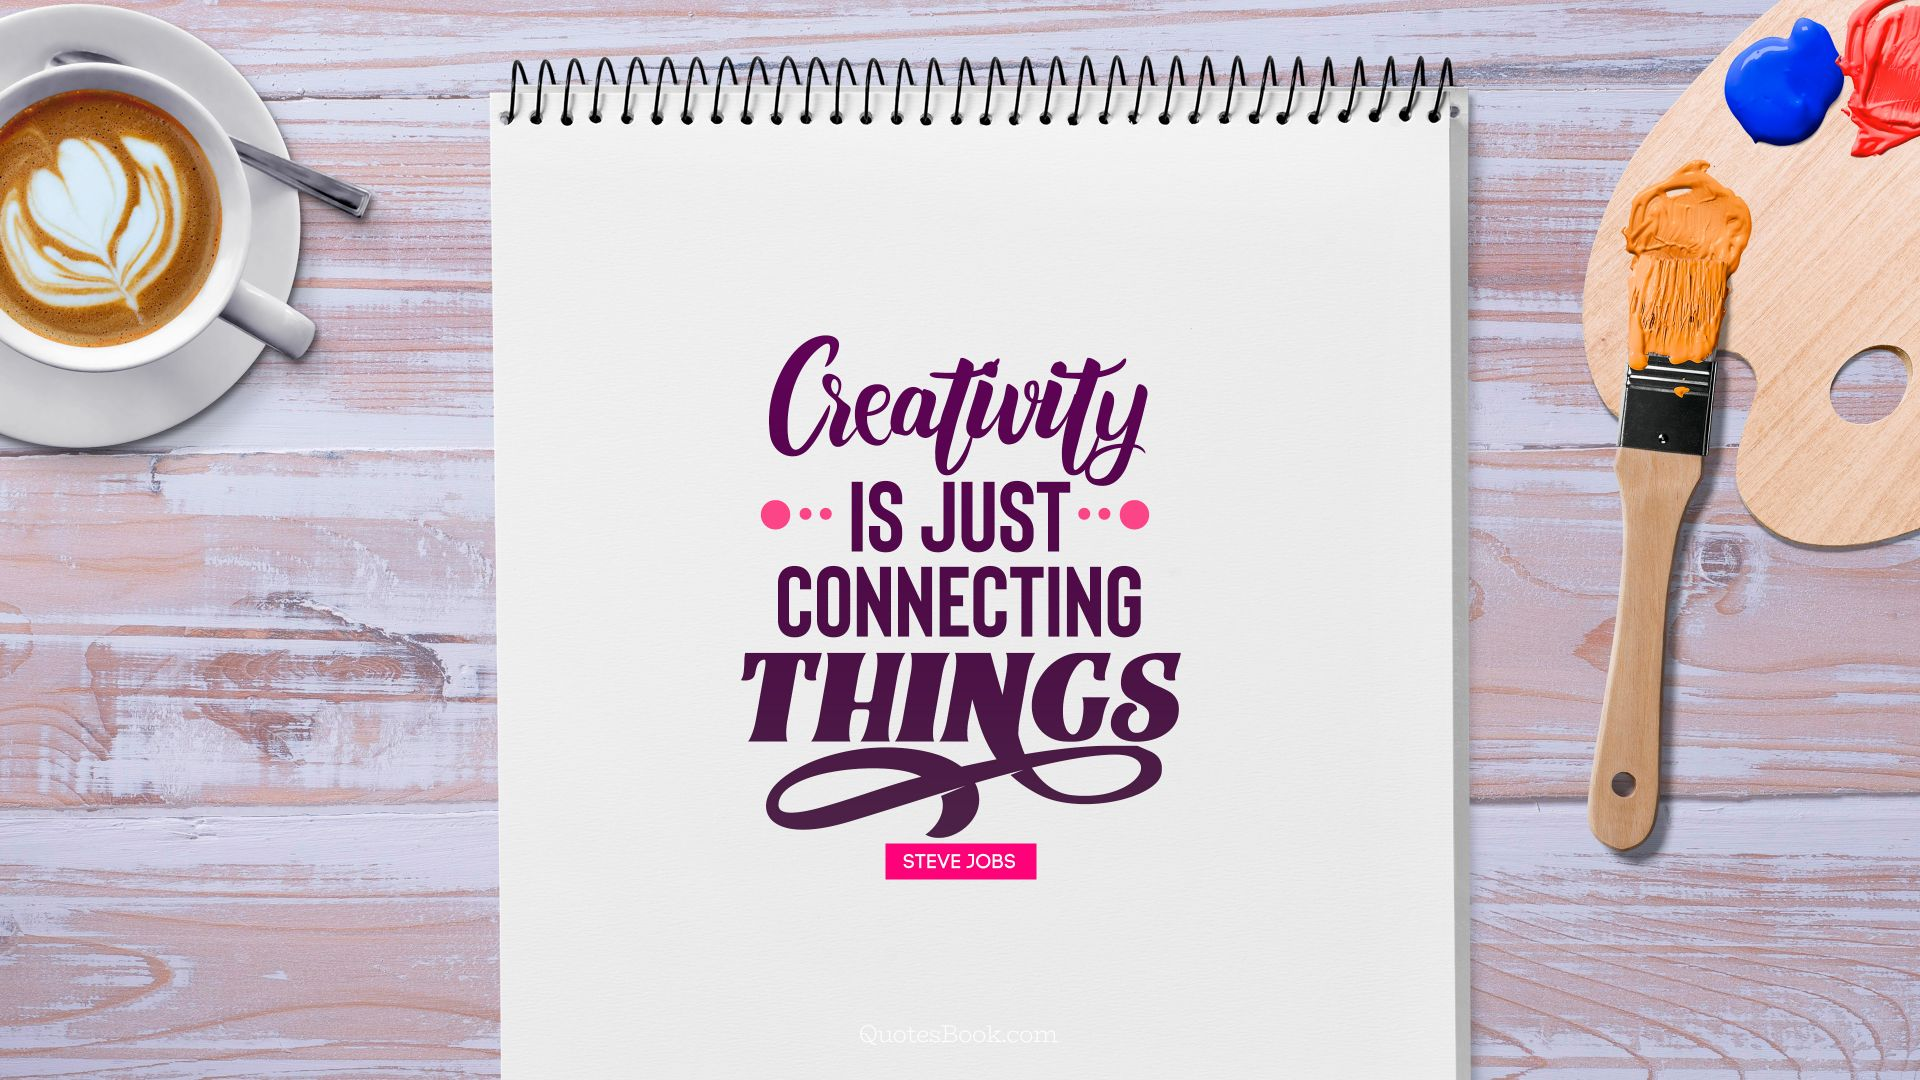 Creativity is just connecting things. - Quote by Steve Jobs